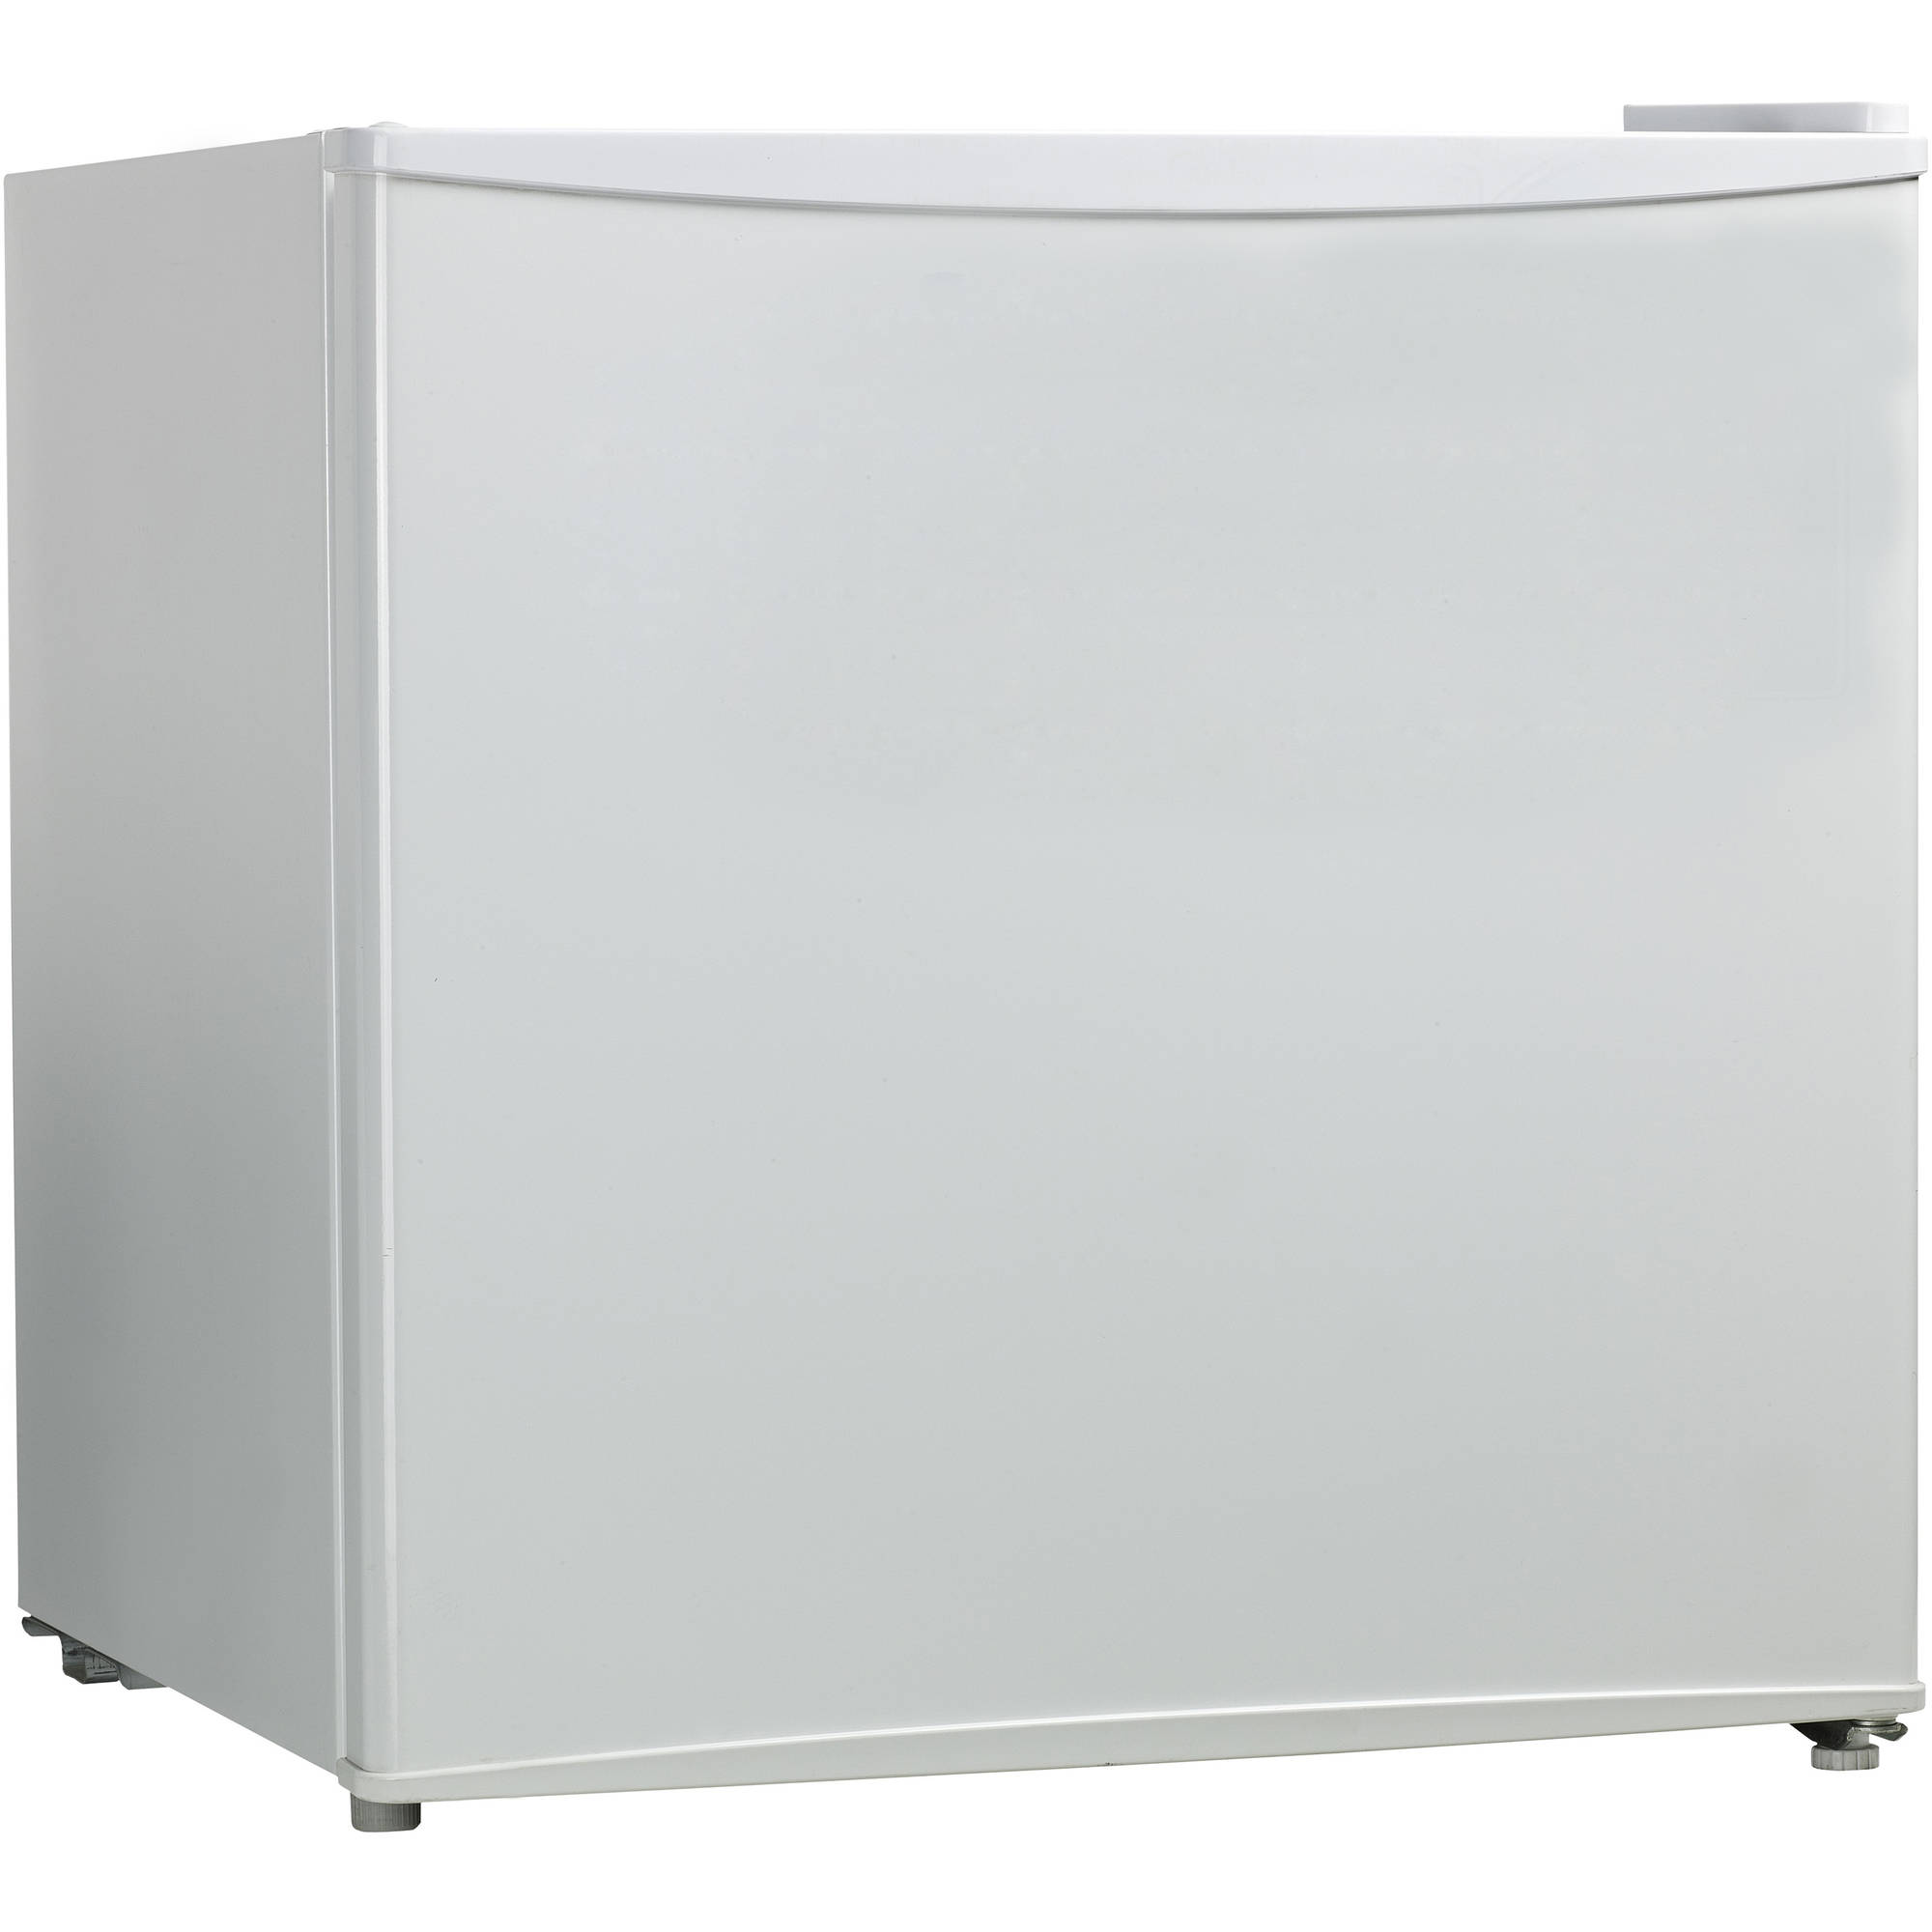 Vertical Freezers For Sale Small Upright Freezers